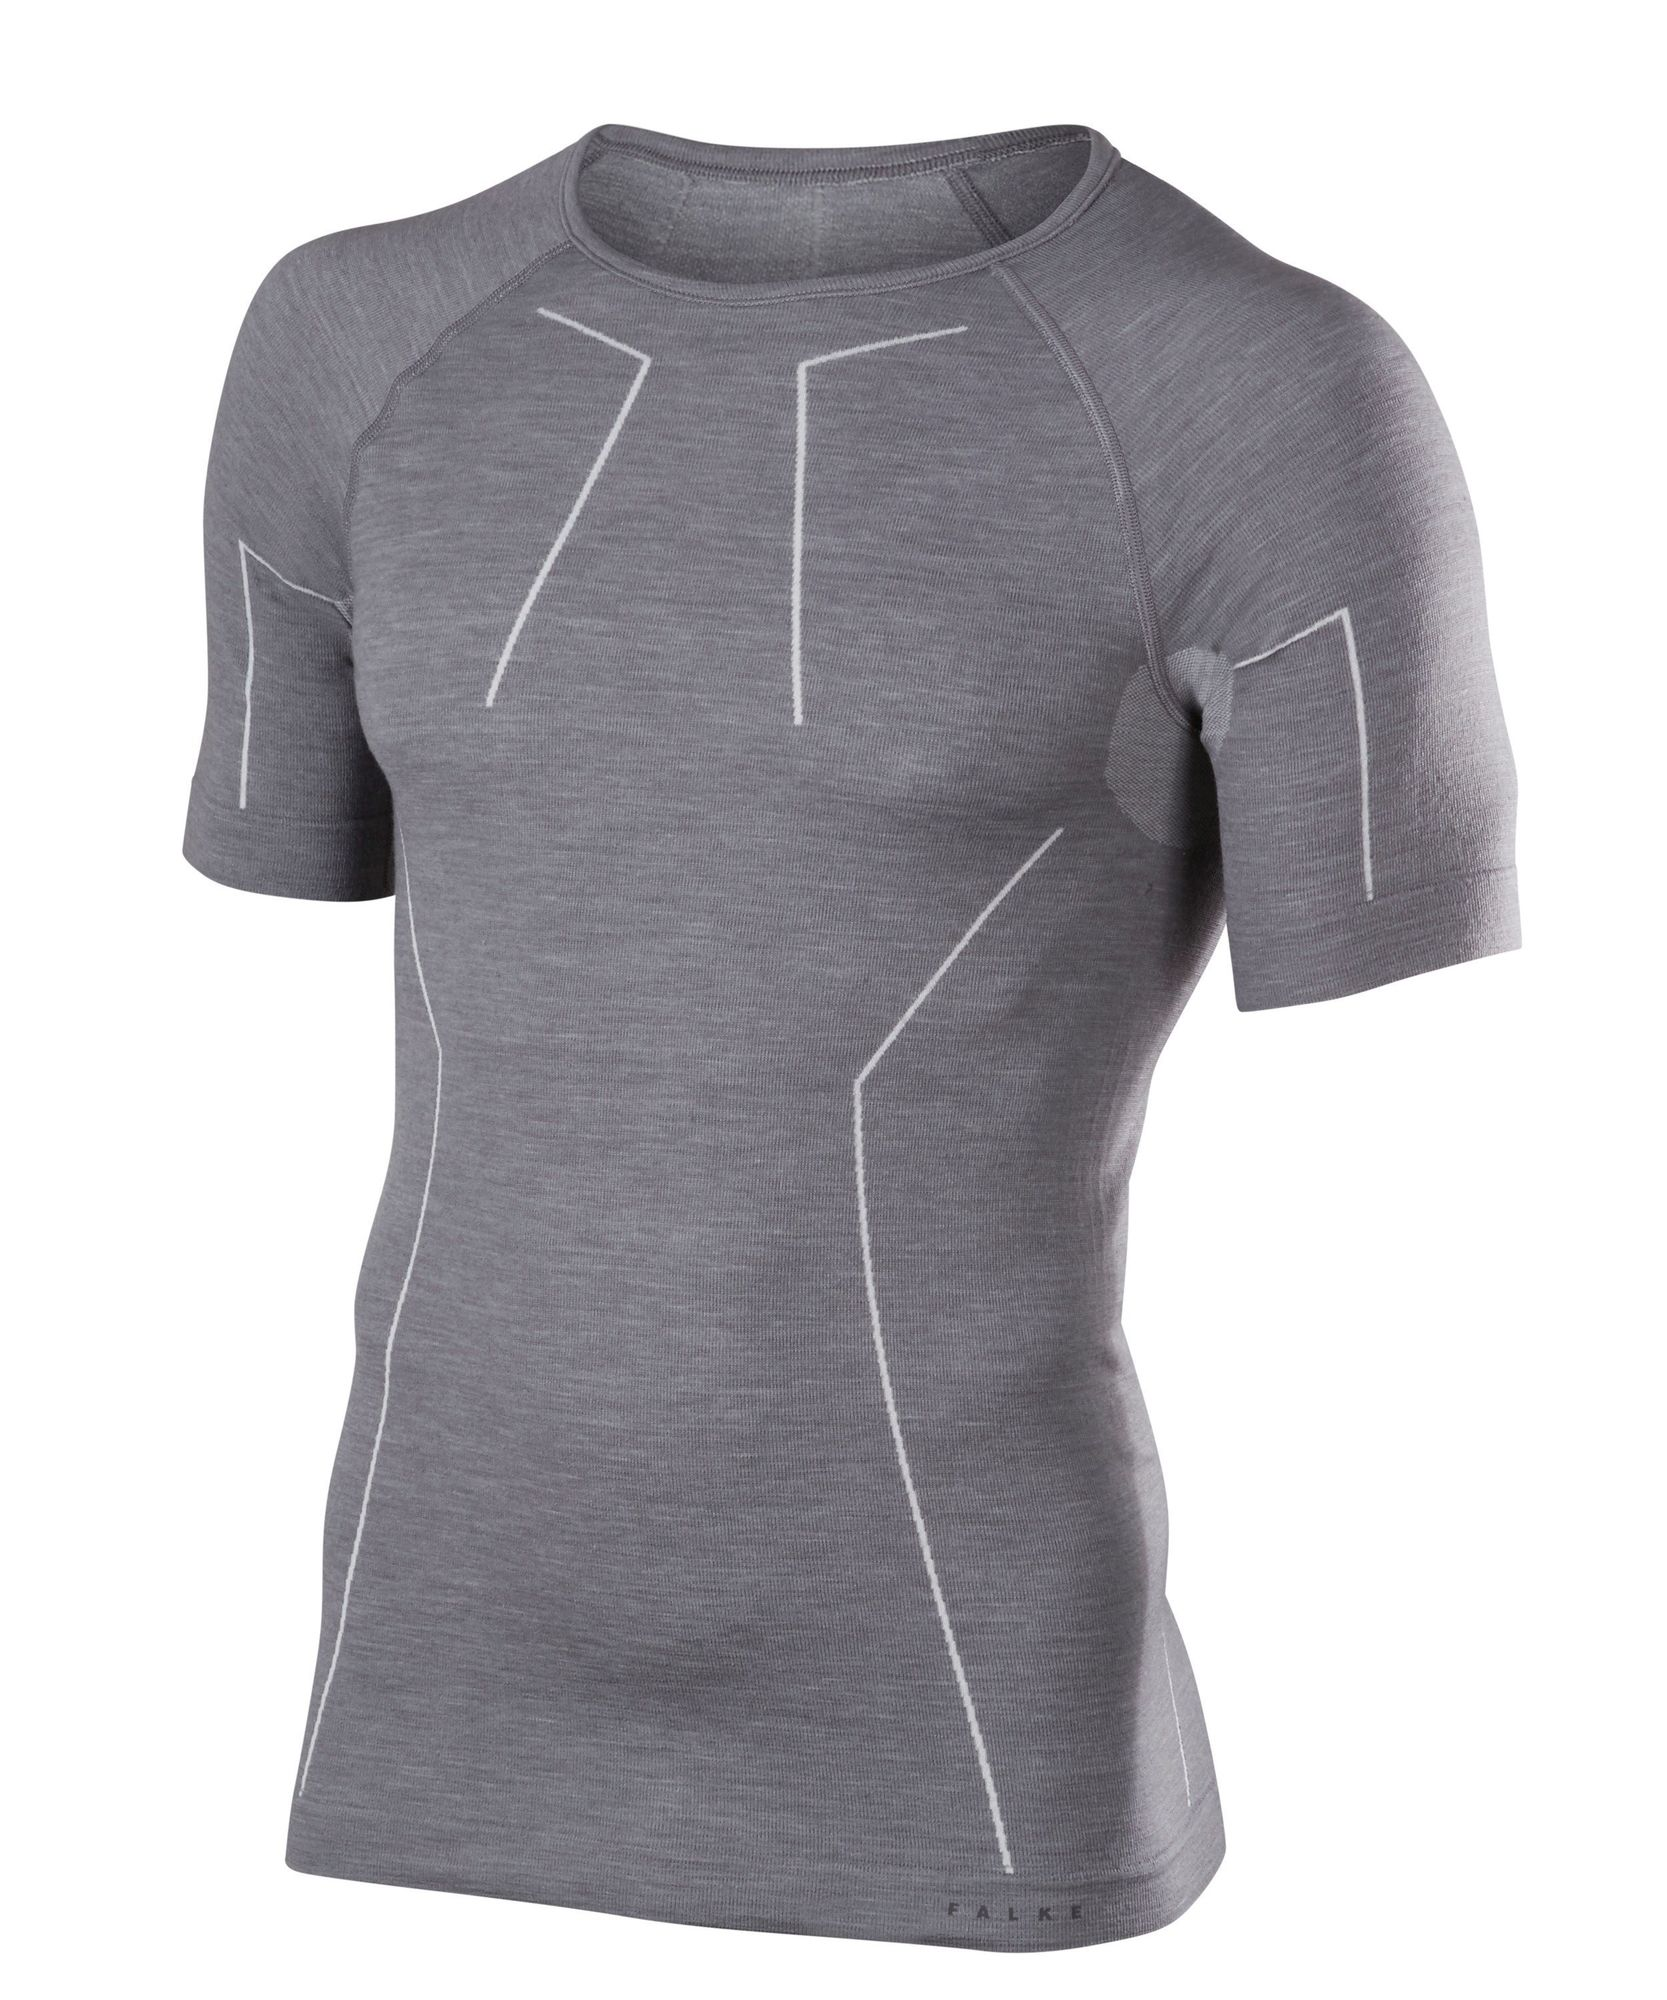 Falke Kurzarmshirt Wool-Tech in Grau